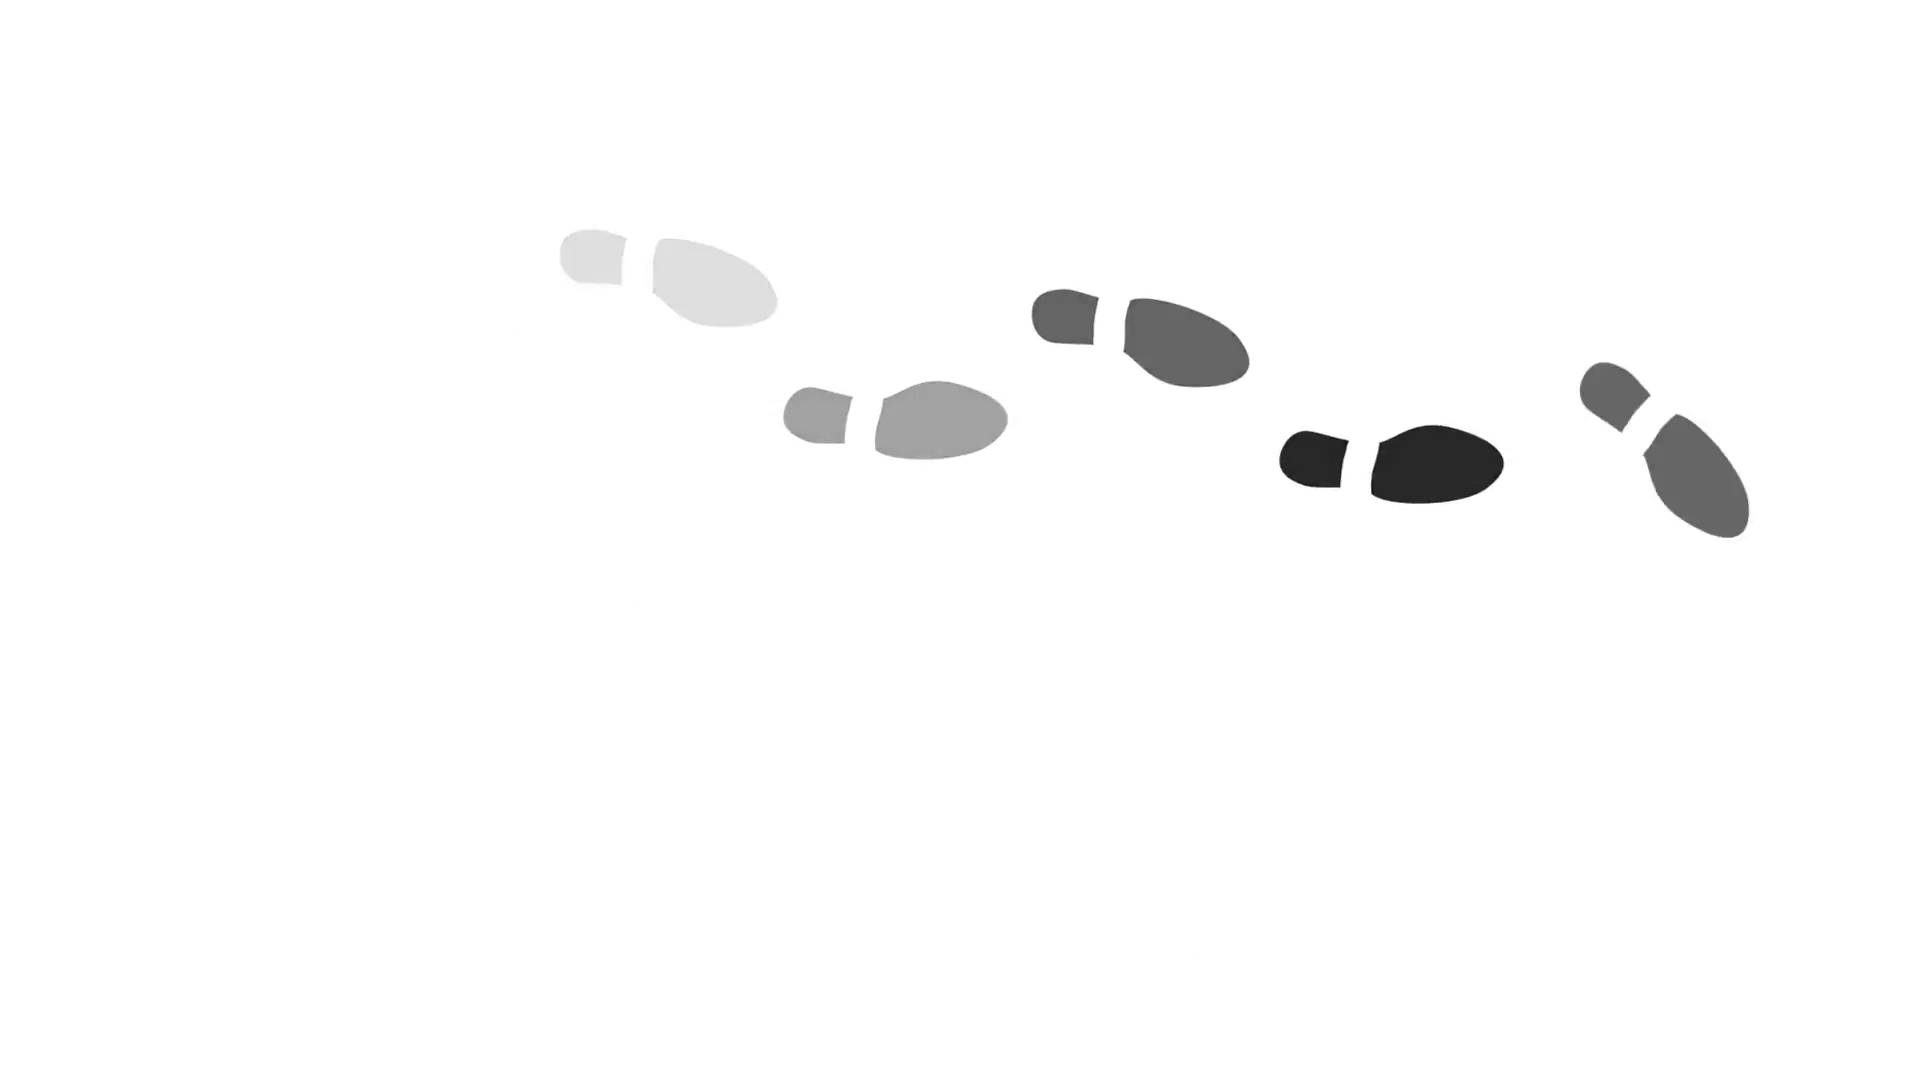 1920x1080 Shoes Footprints Vectors, Photos And Psd Files Free Download